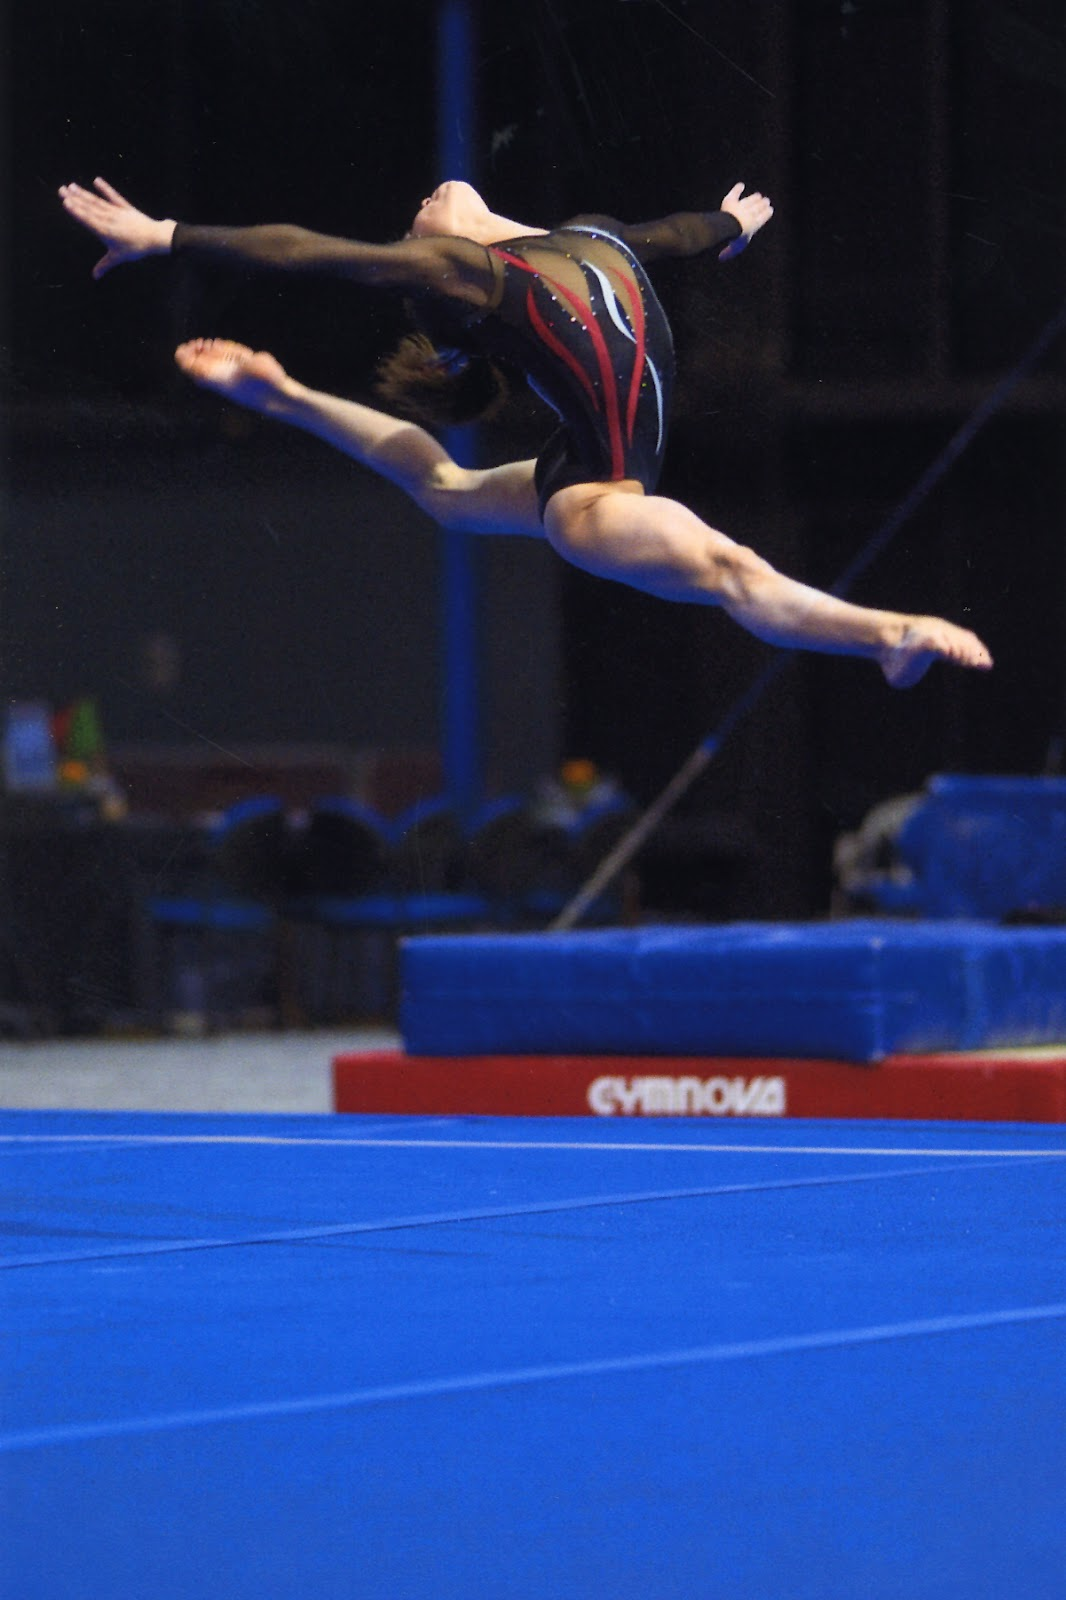 Gymnastic floor on pinterest gymnastics gymnasts and for Floor gymnastics